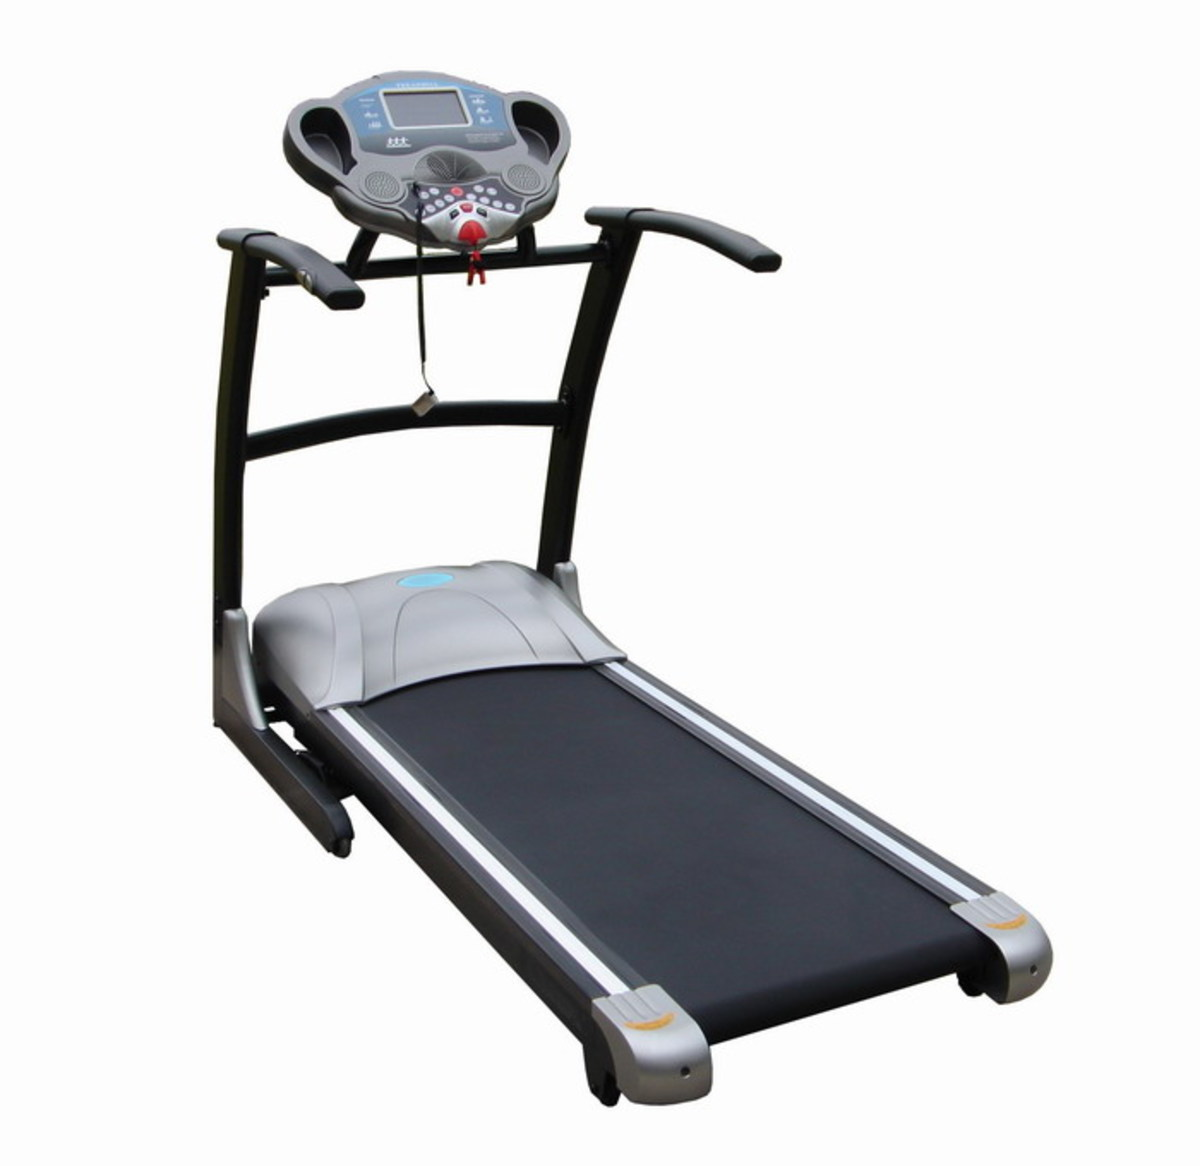 Choosing the Best Home Treadmill: the Top 5 Features